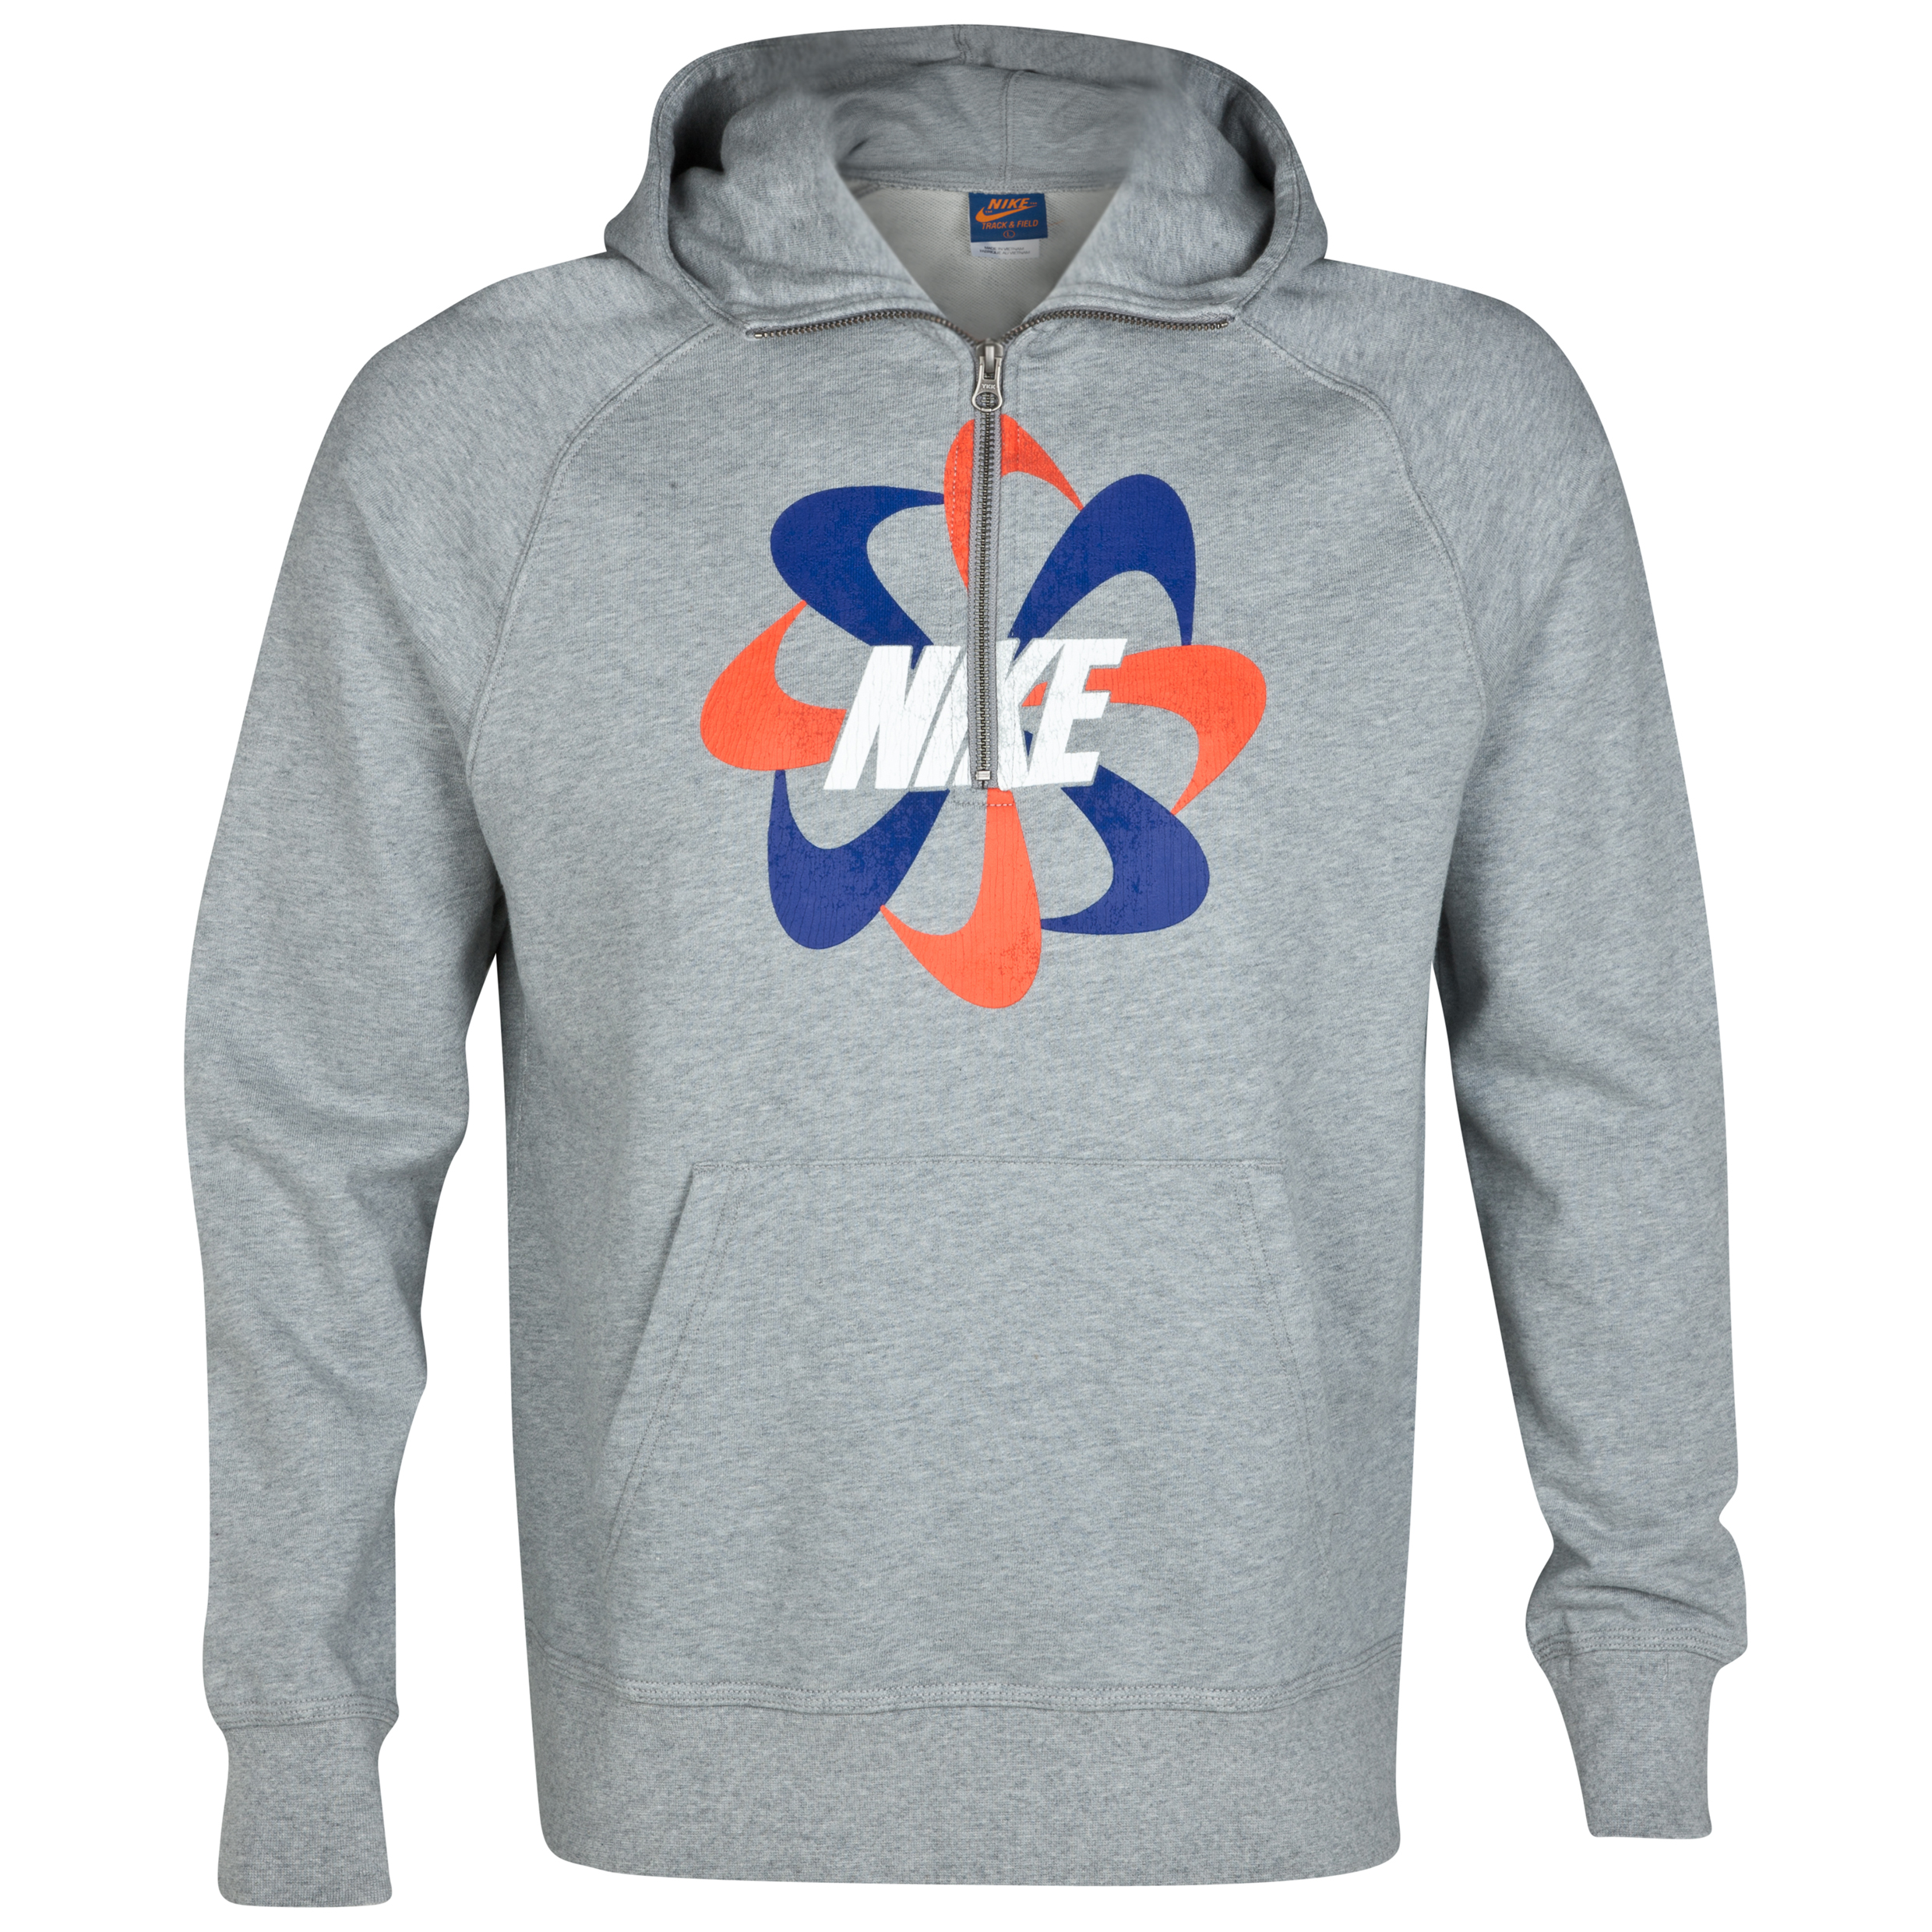 Nike Running Pinwheel Half Zip Hoody - Dark Grey Heather